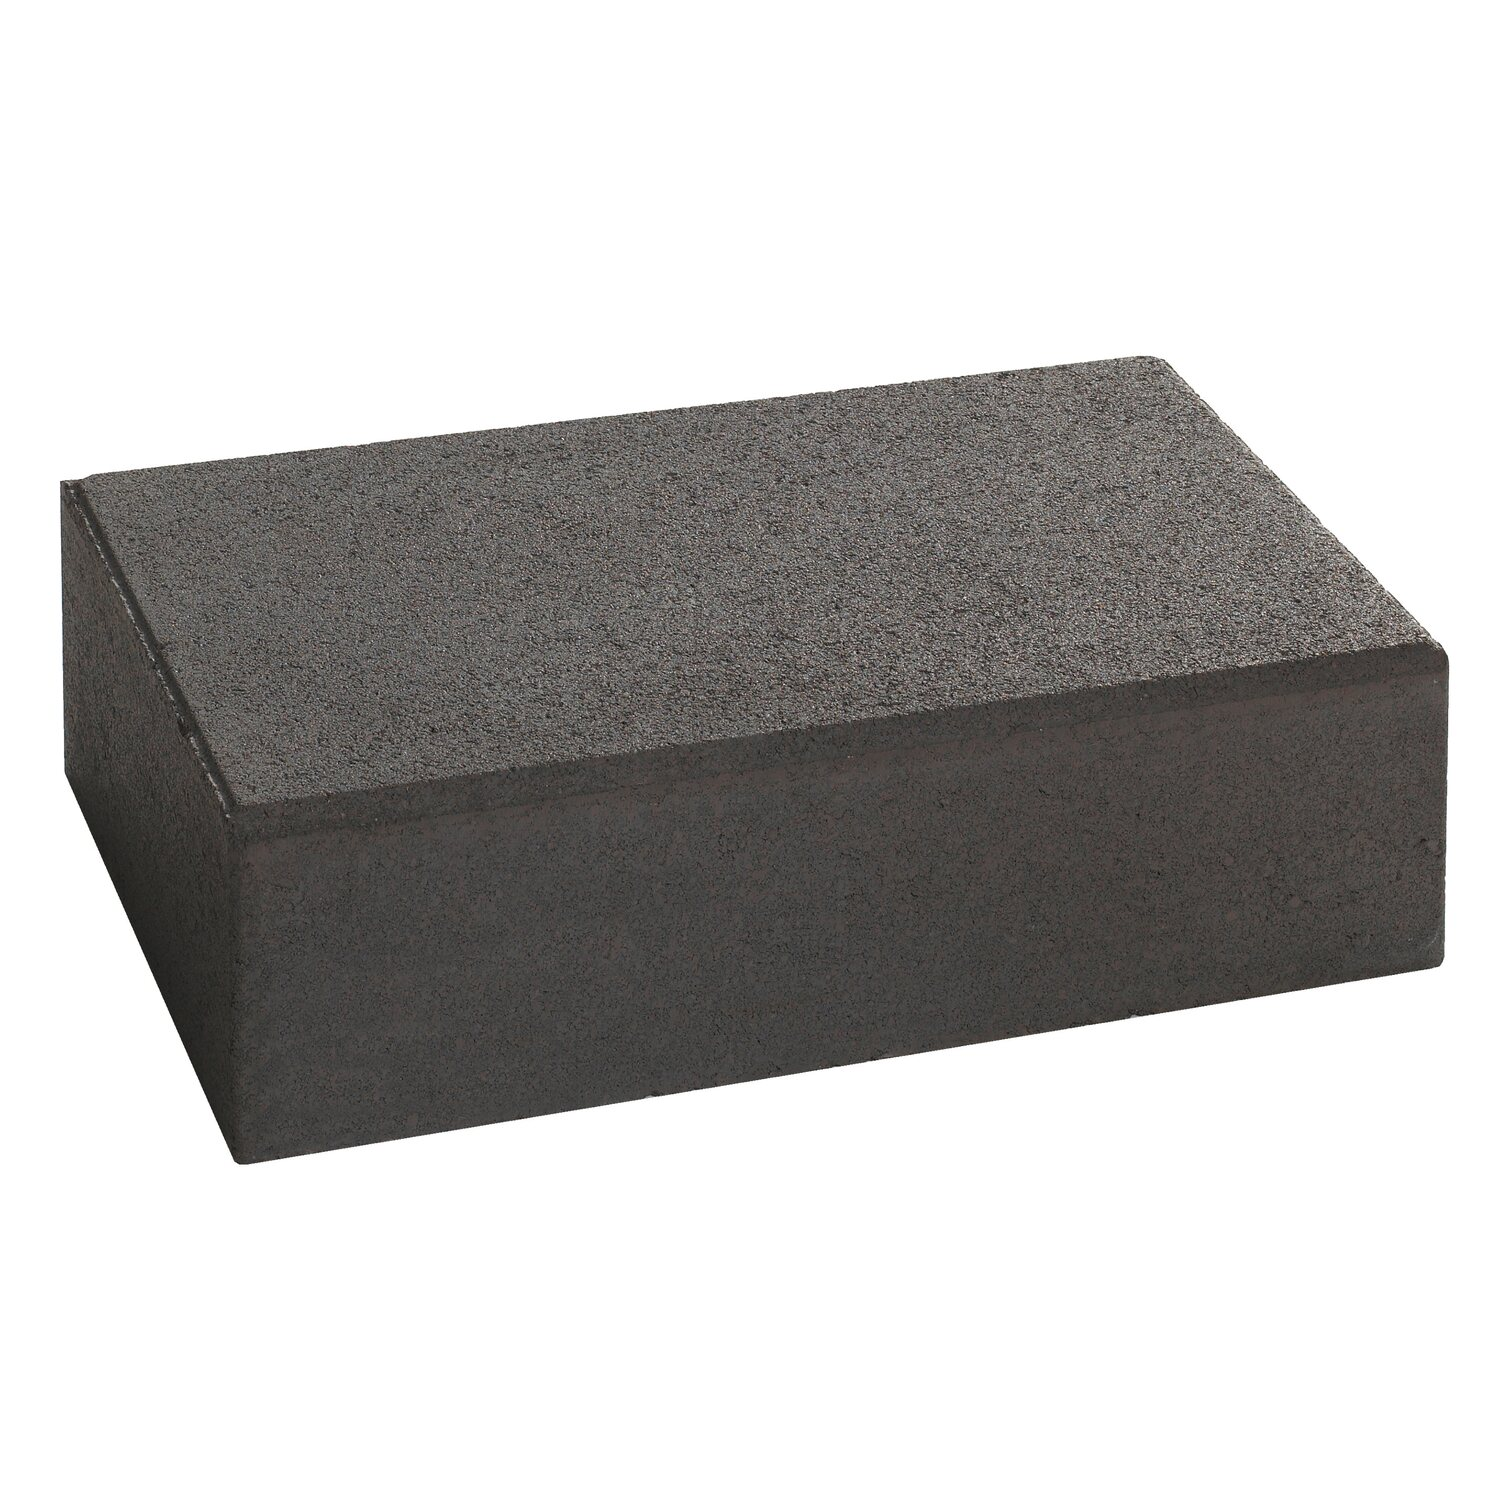 kann blockstufe aus beton anthrazit 50 cm x 34 cm x 15 cm. Black Bedroom Furniture Sets. Home Design Ideas